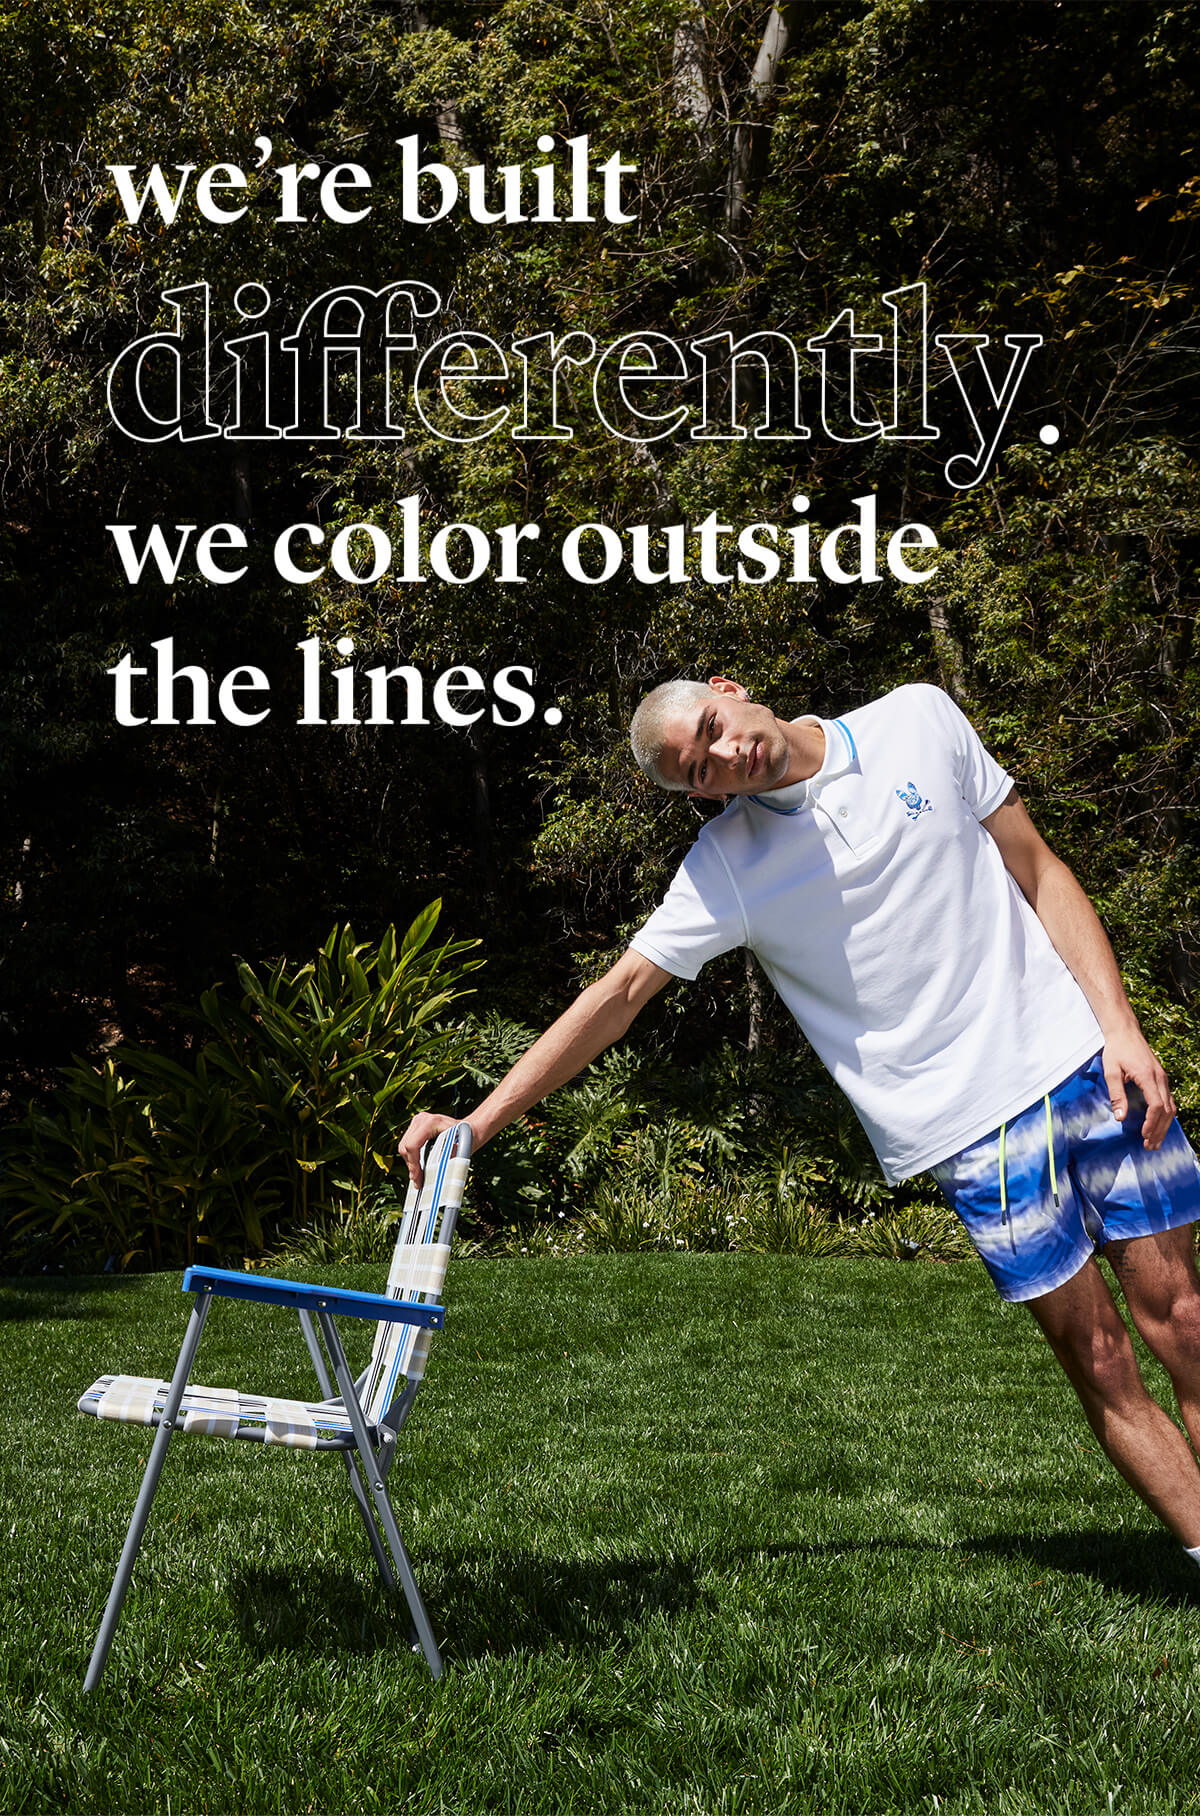 we're built differently. we color outside the lines